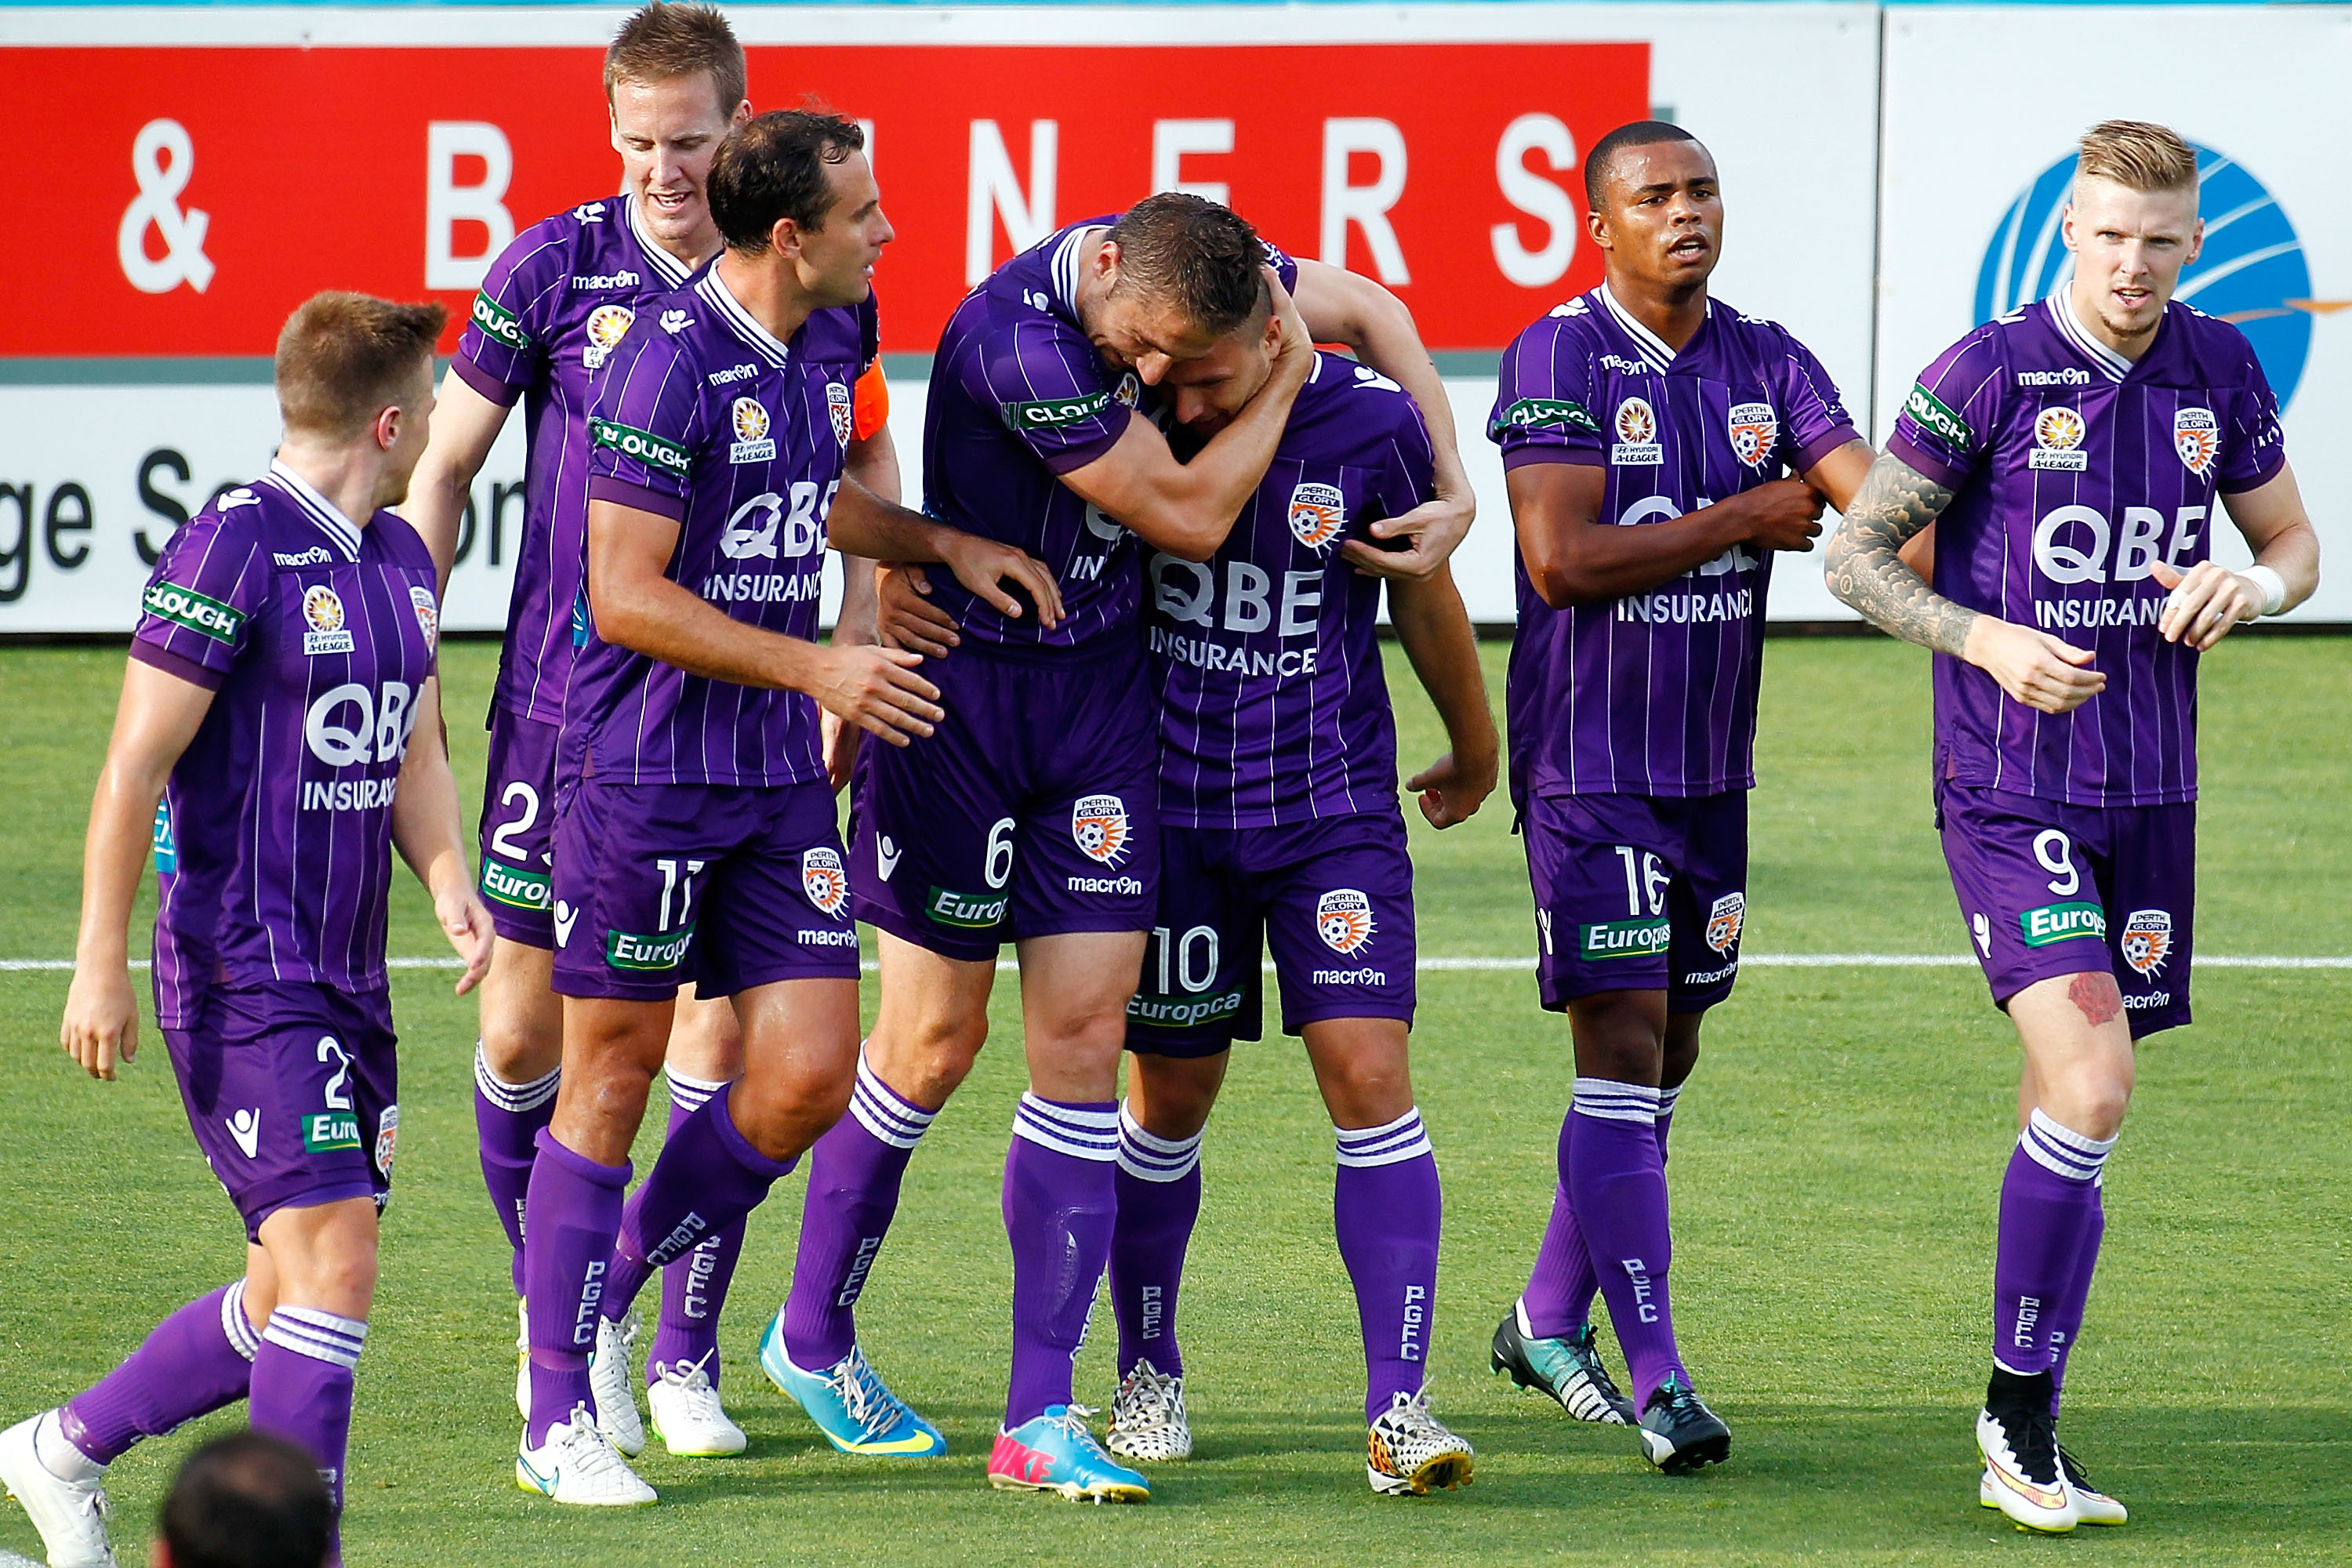 Perth gunning for Victory against Melbourne | Perth Glory